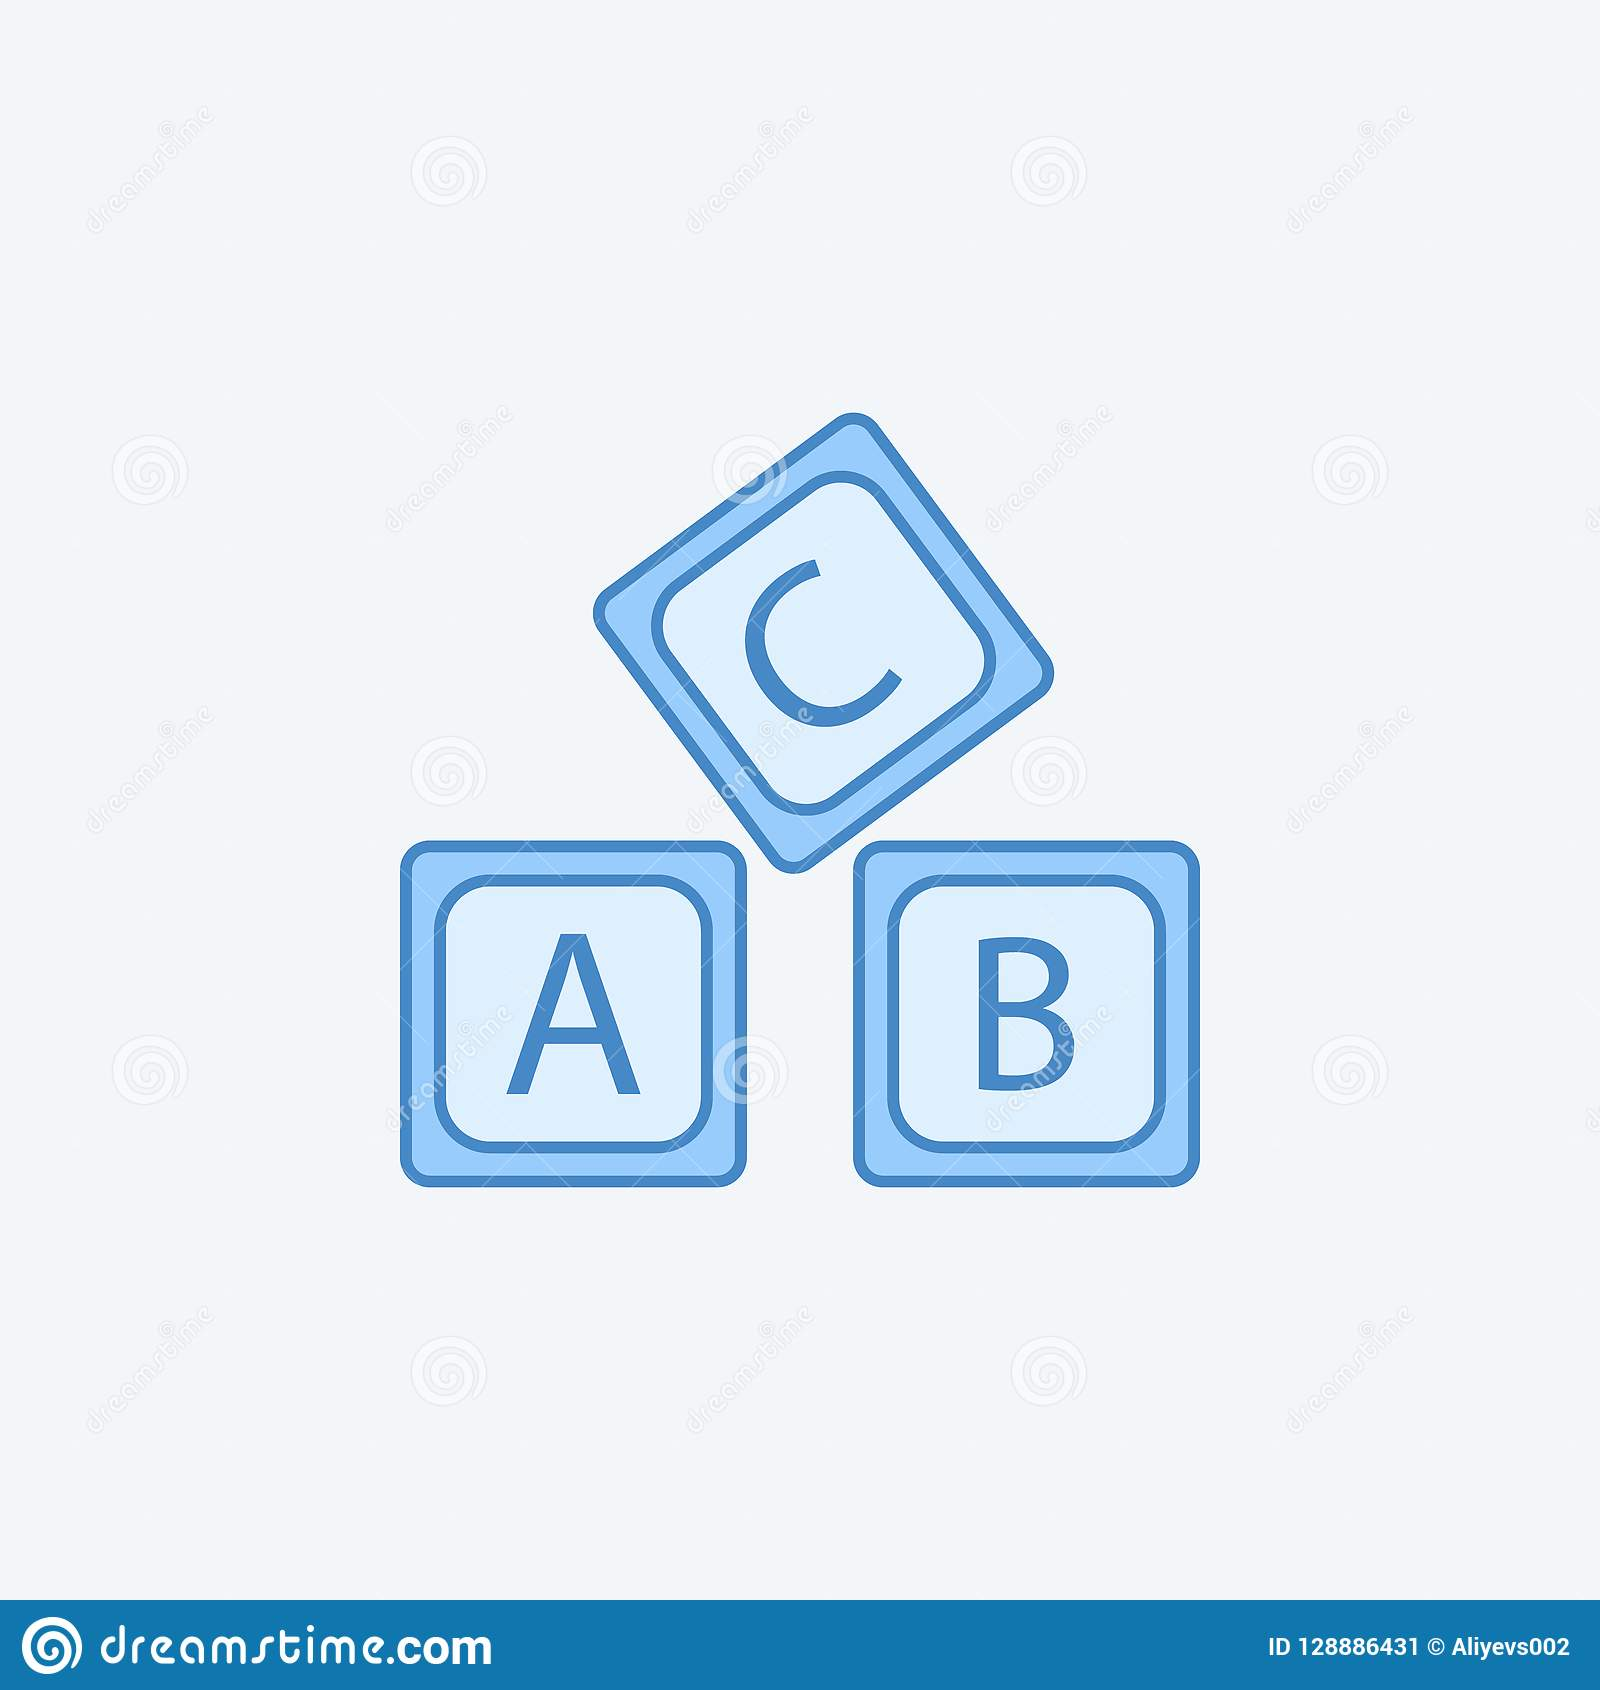 letter A B C logo alphabet 2 colored line icon. Simple dark and light blue element illustration. letter A B C logo alphabet concep